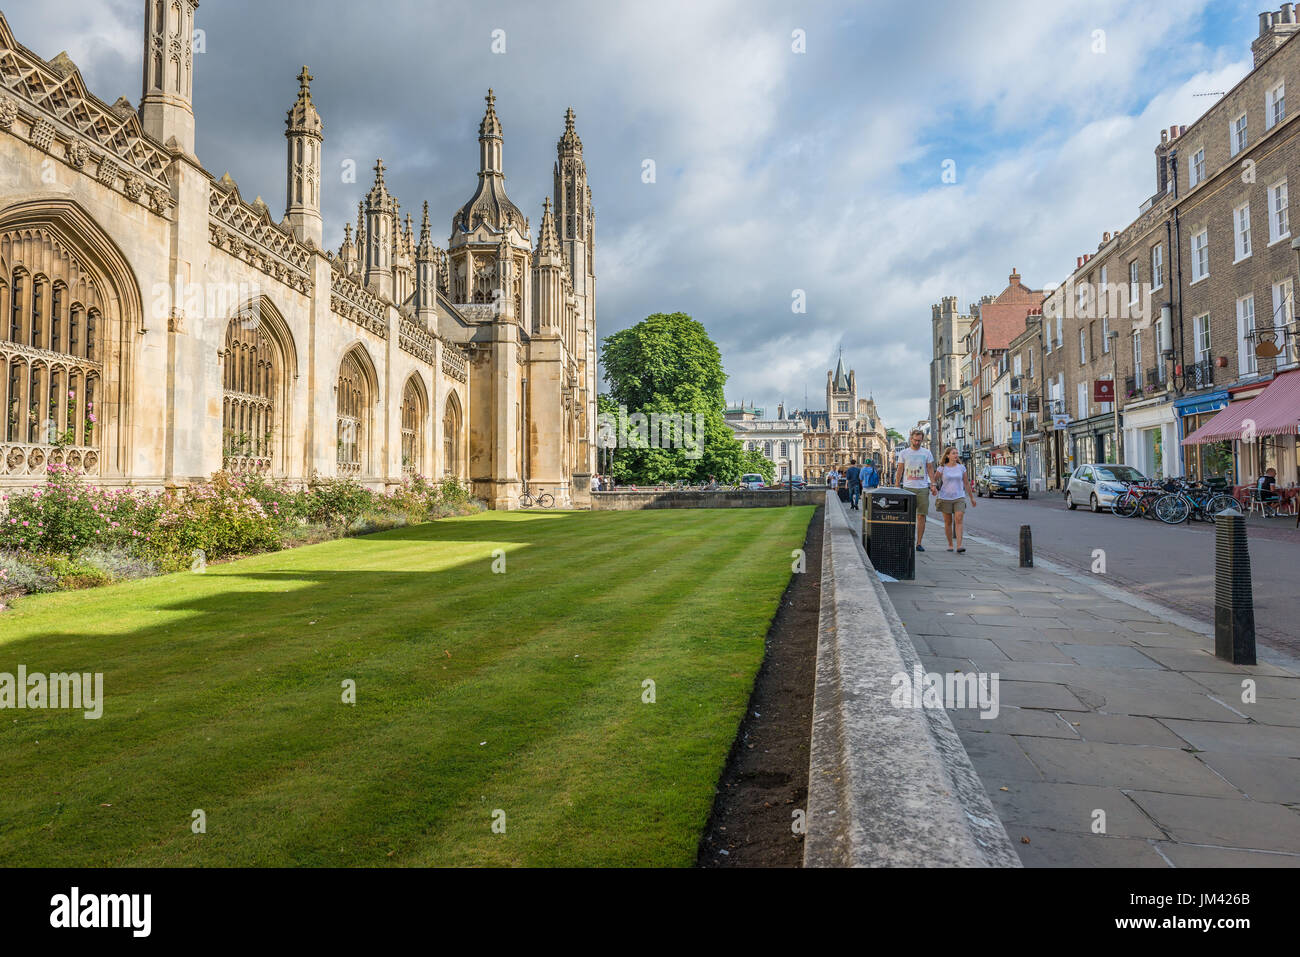 A landscape looking view down King's Parade road in Cambridge city centre with King College on the left, Cambridge, Cambridgeshire, UK - Stock Image